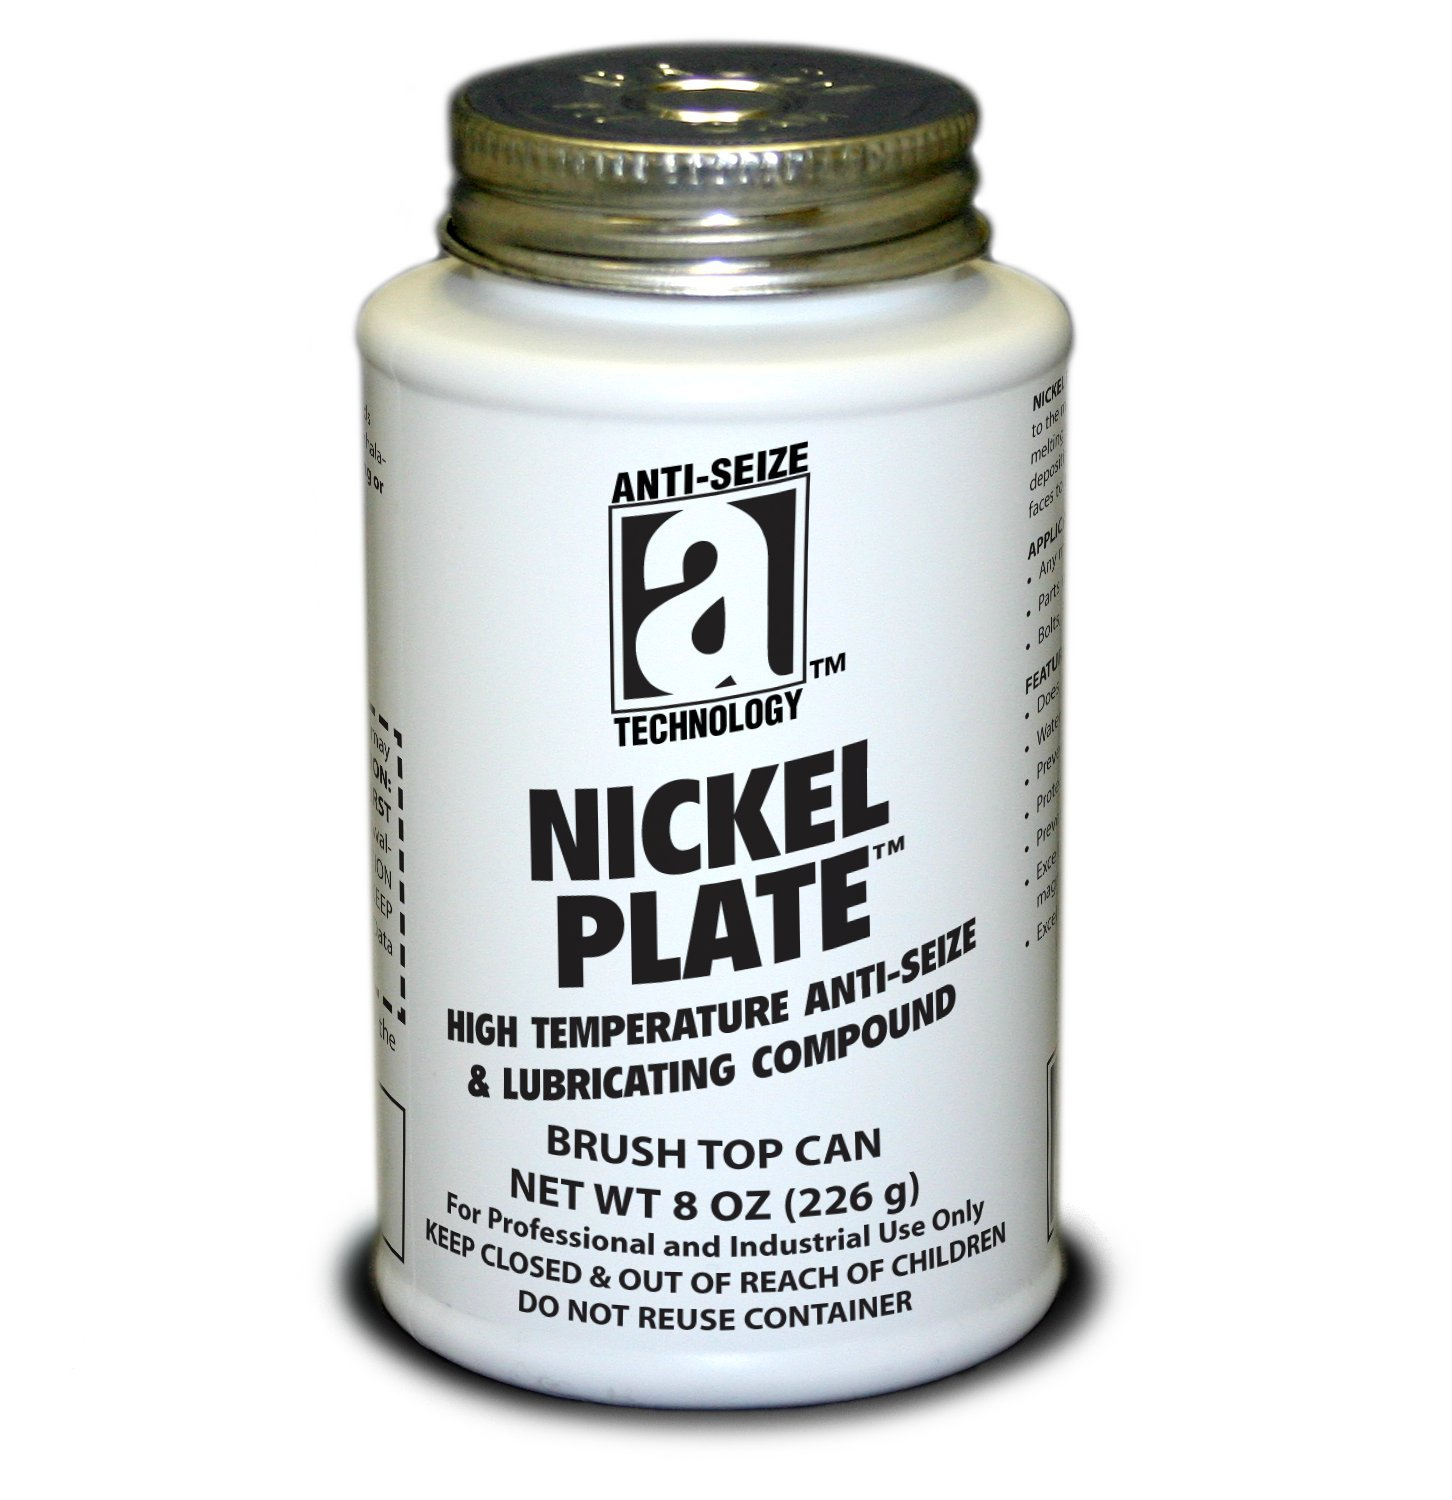 Anti-Seize Technology 35010 Nickel Plate Anti-Seize Compound with Graphite Paste in A Non Melting Carrier, 8 oz, Silver/Gray